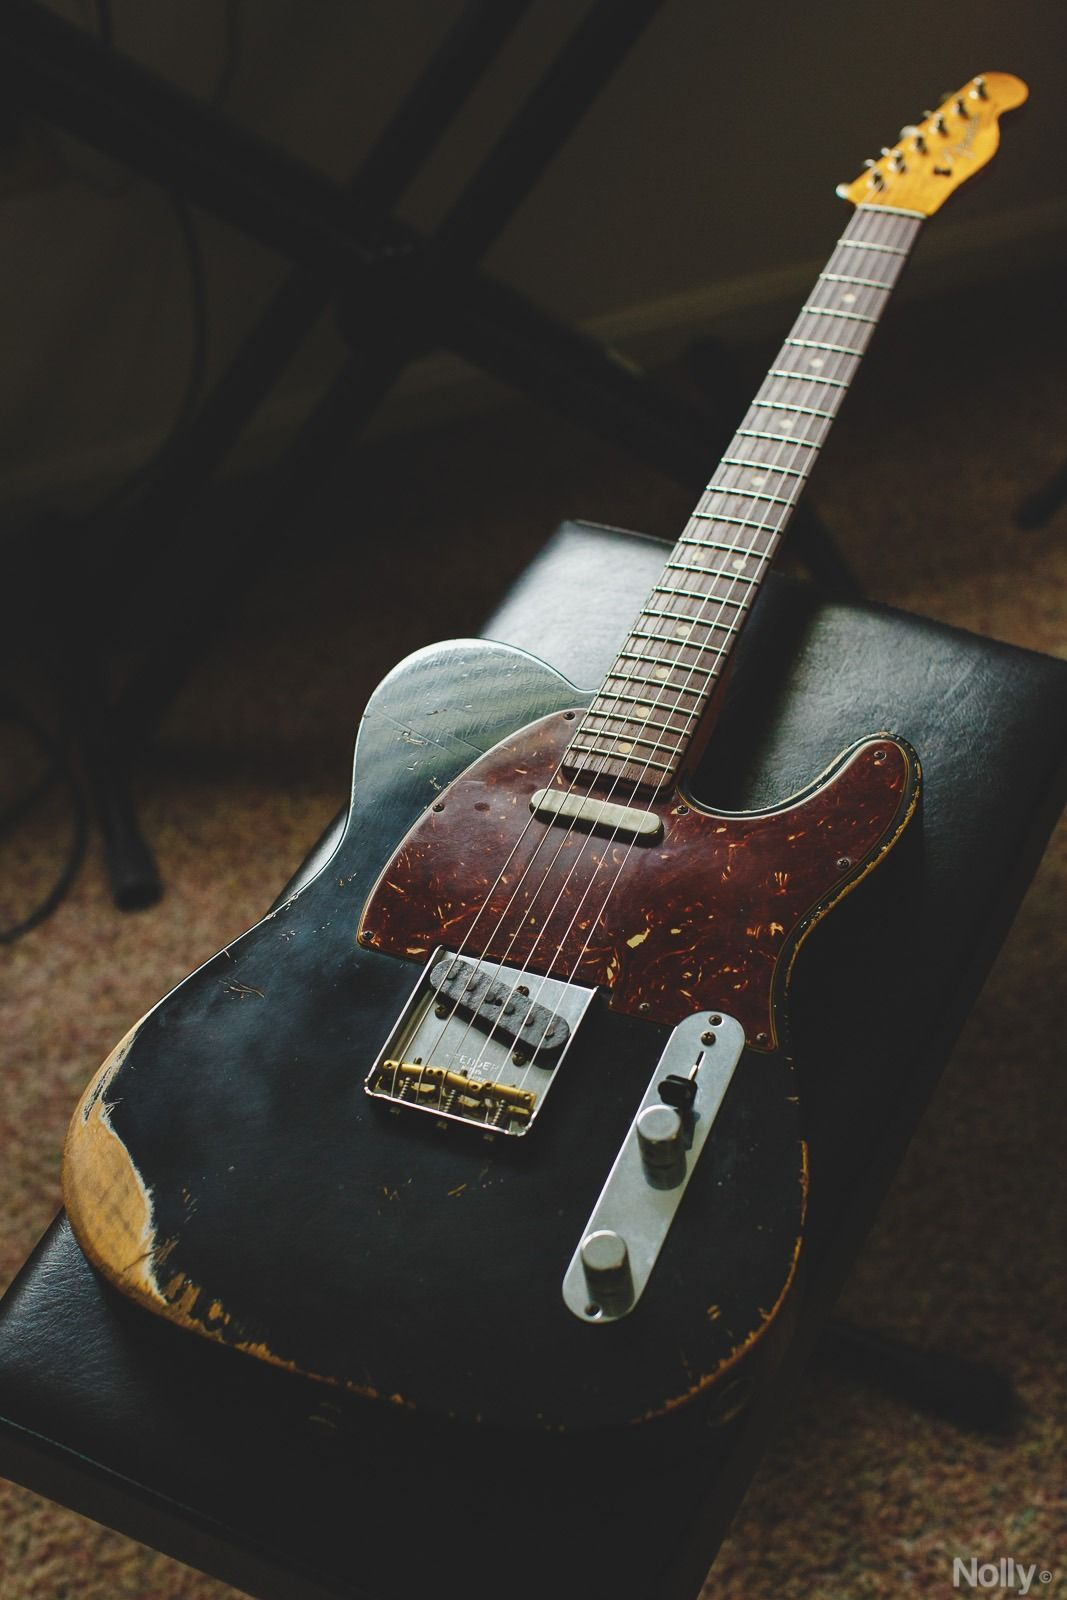 Guitarras Decoradas Pin De Brandoon Padilla En Guitars En 2019 Pinterest